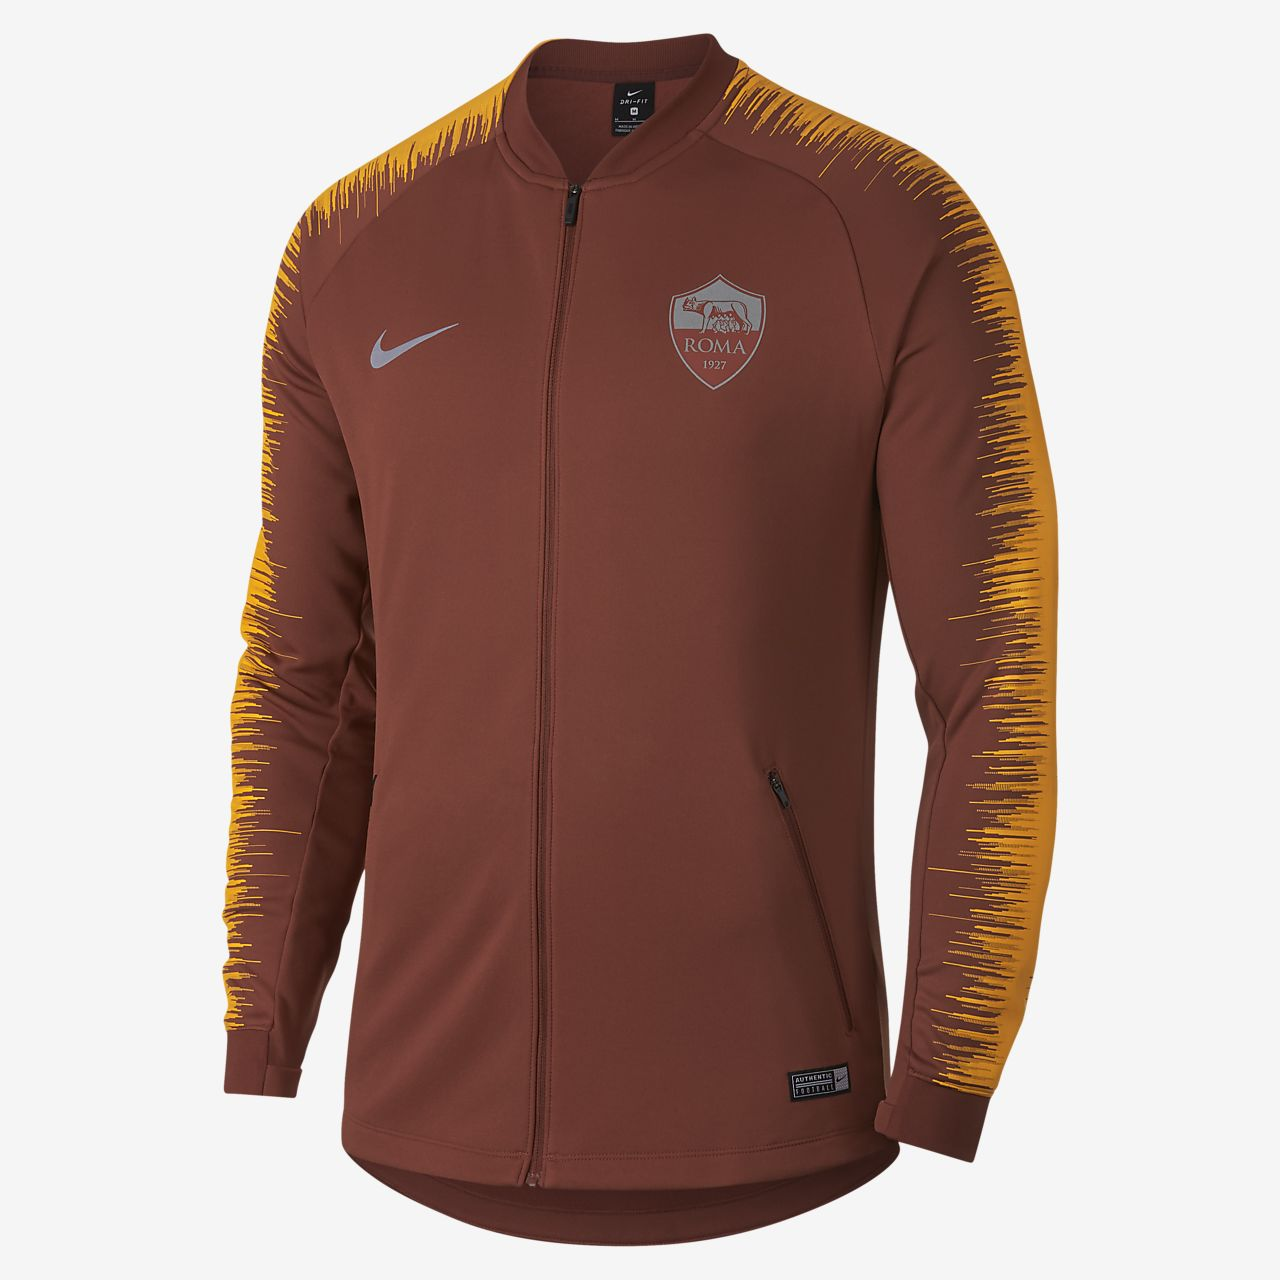 A.S. Roma Anthem Men's Football Jacket